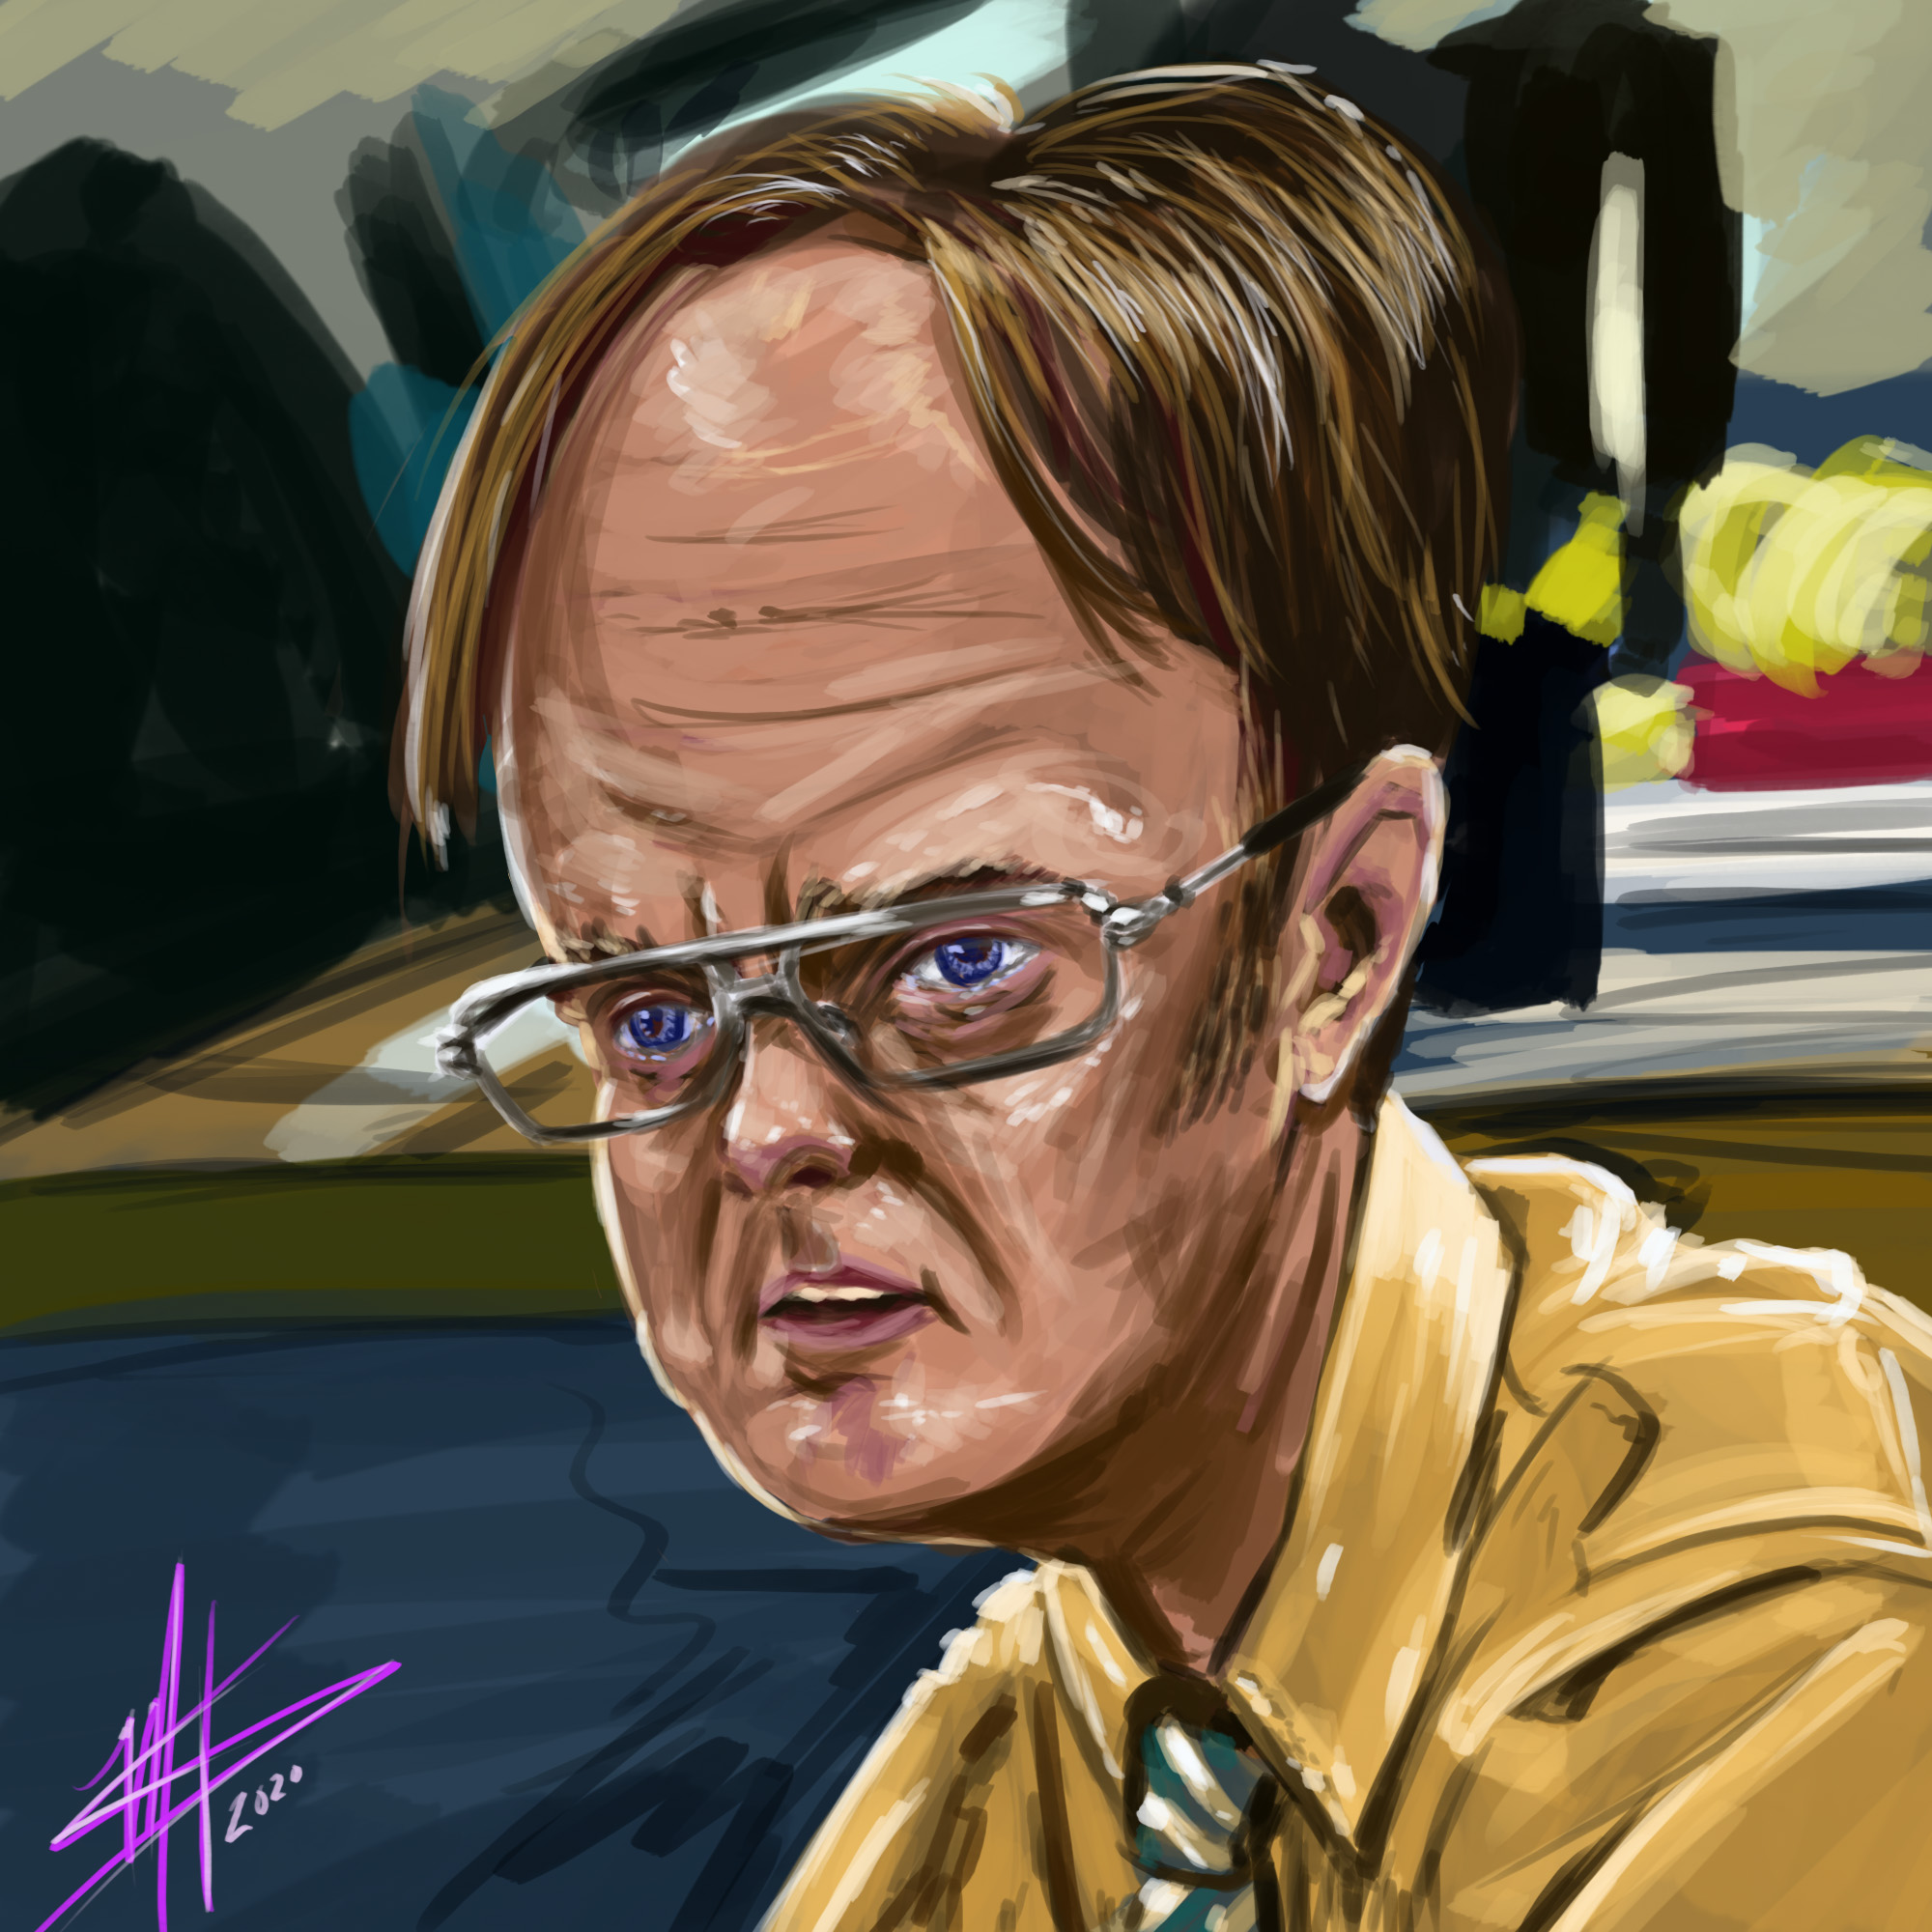 Dwight Digital Paint